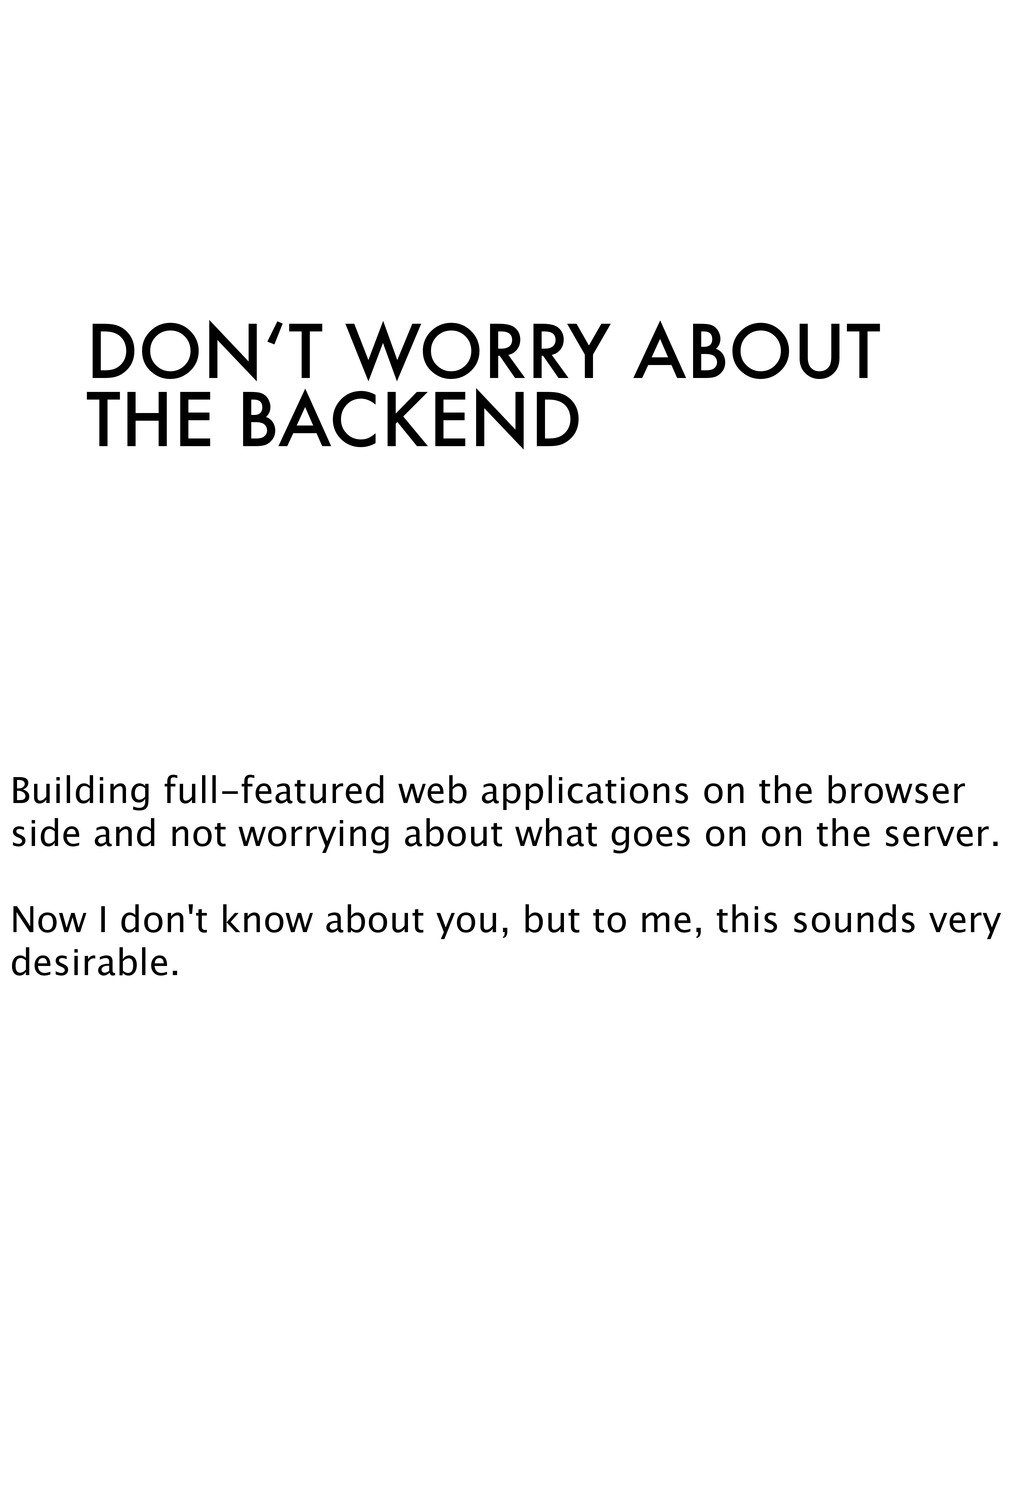 DON'T WORRY ABOUT THE BACKEND Building full-fea...